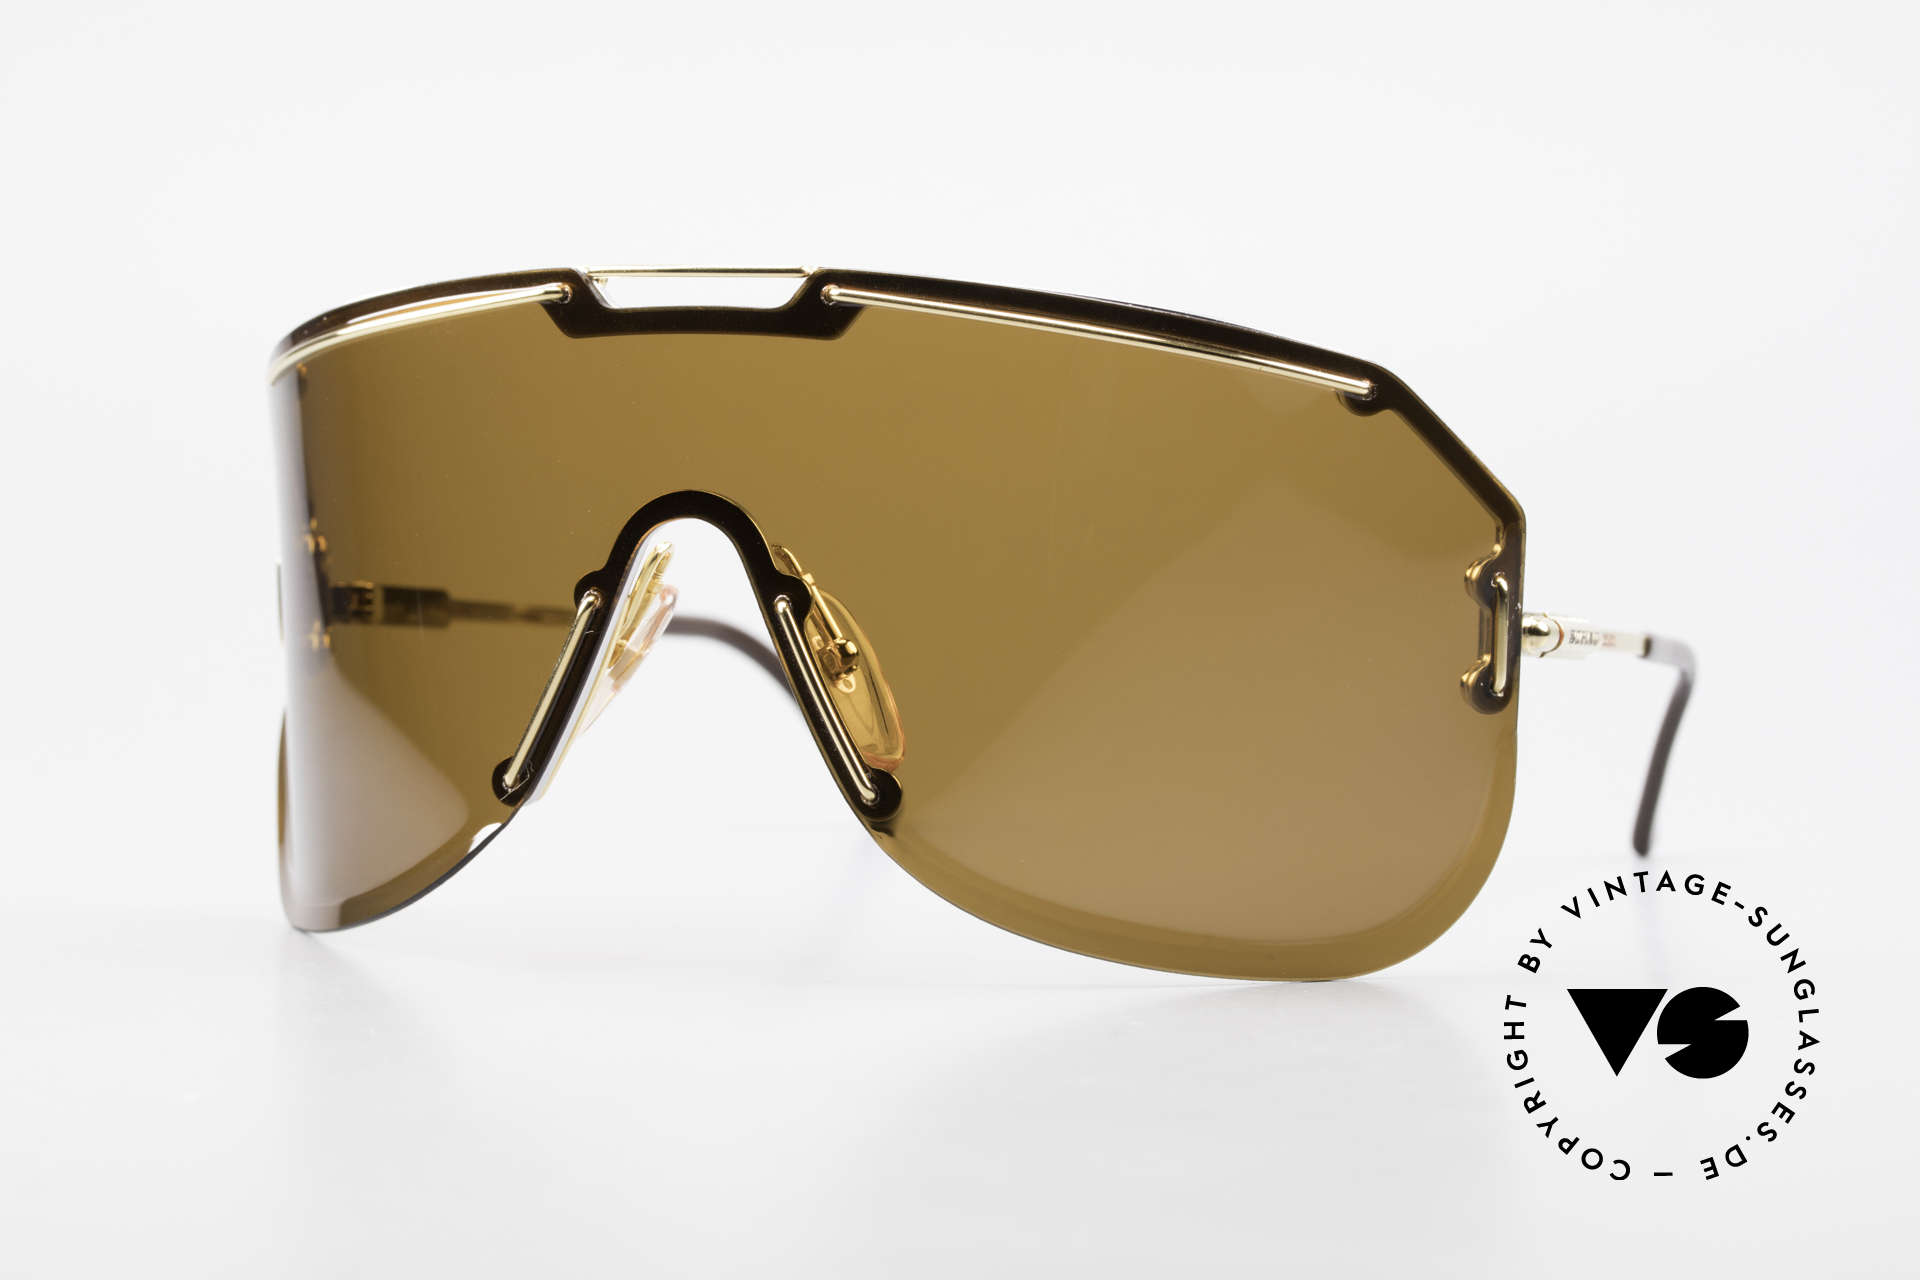 Boeing 5703 80's Luxury Pilots Shades, unbelievable rare model of the 80's BOEING Collection, Made for Men